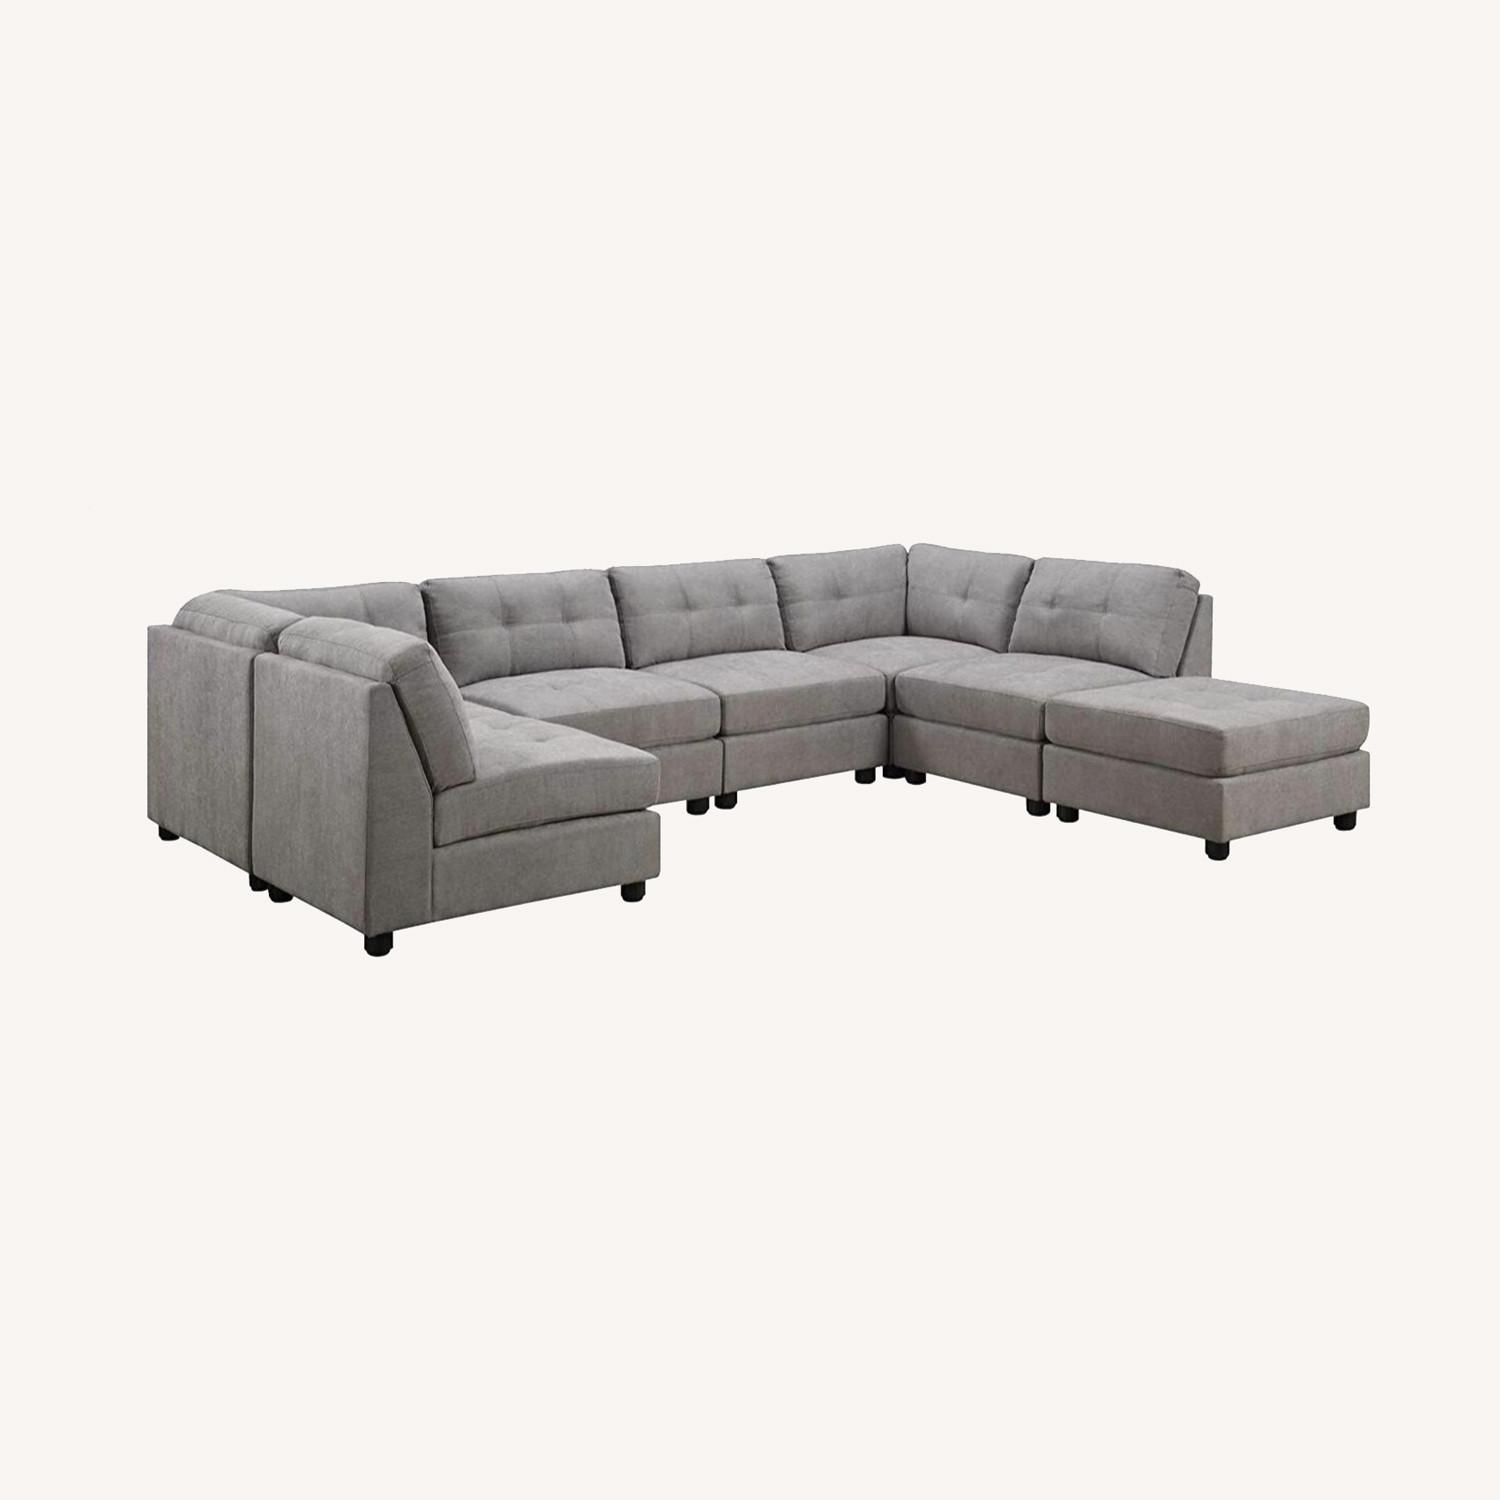 7-Piece Sectional In Dove Chenille Fabric - image-8